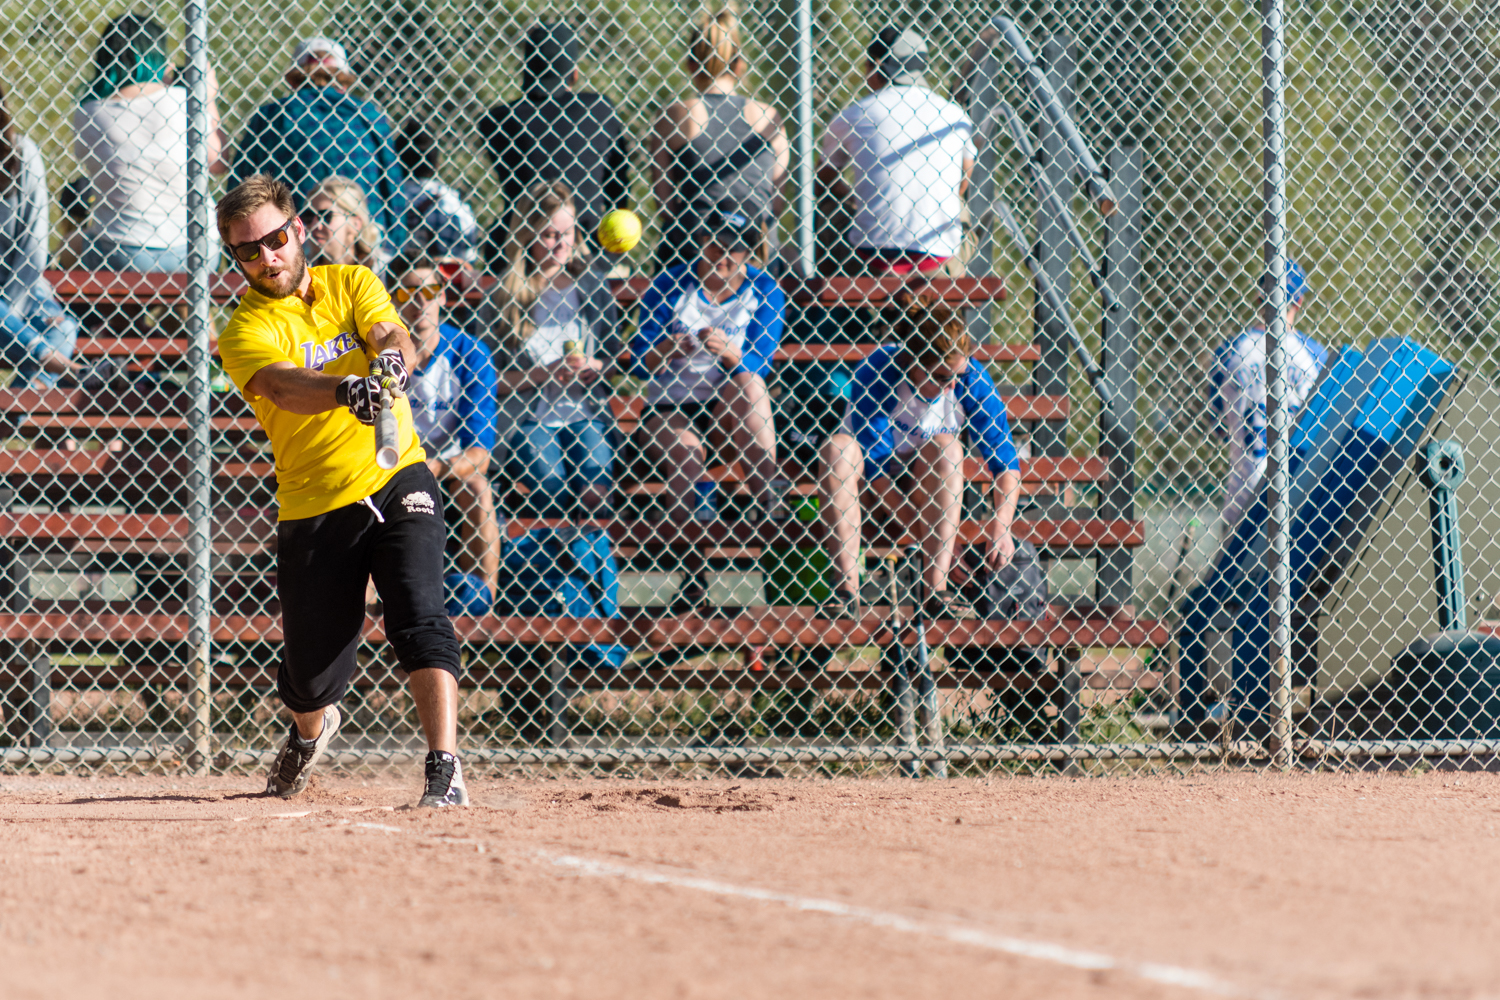 2017 08 22 Softball Playoffs 1-99.jpg